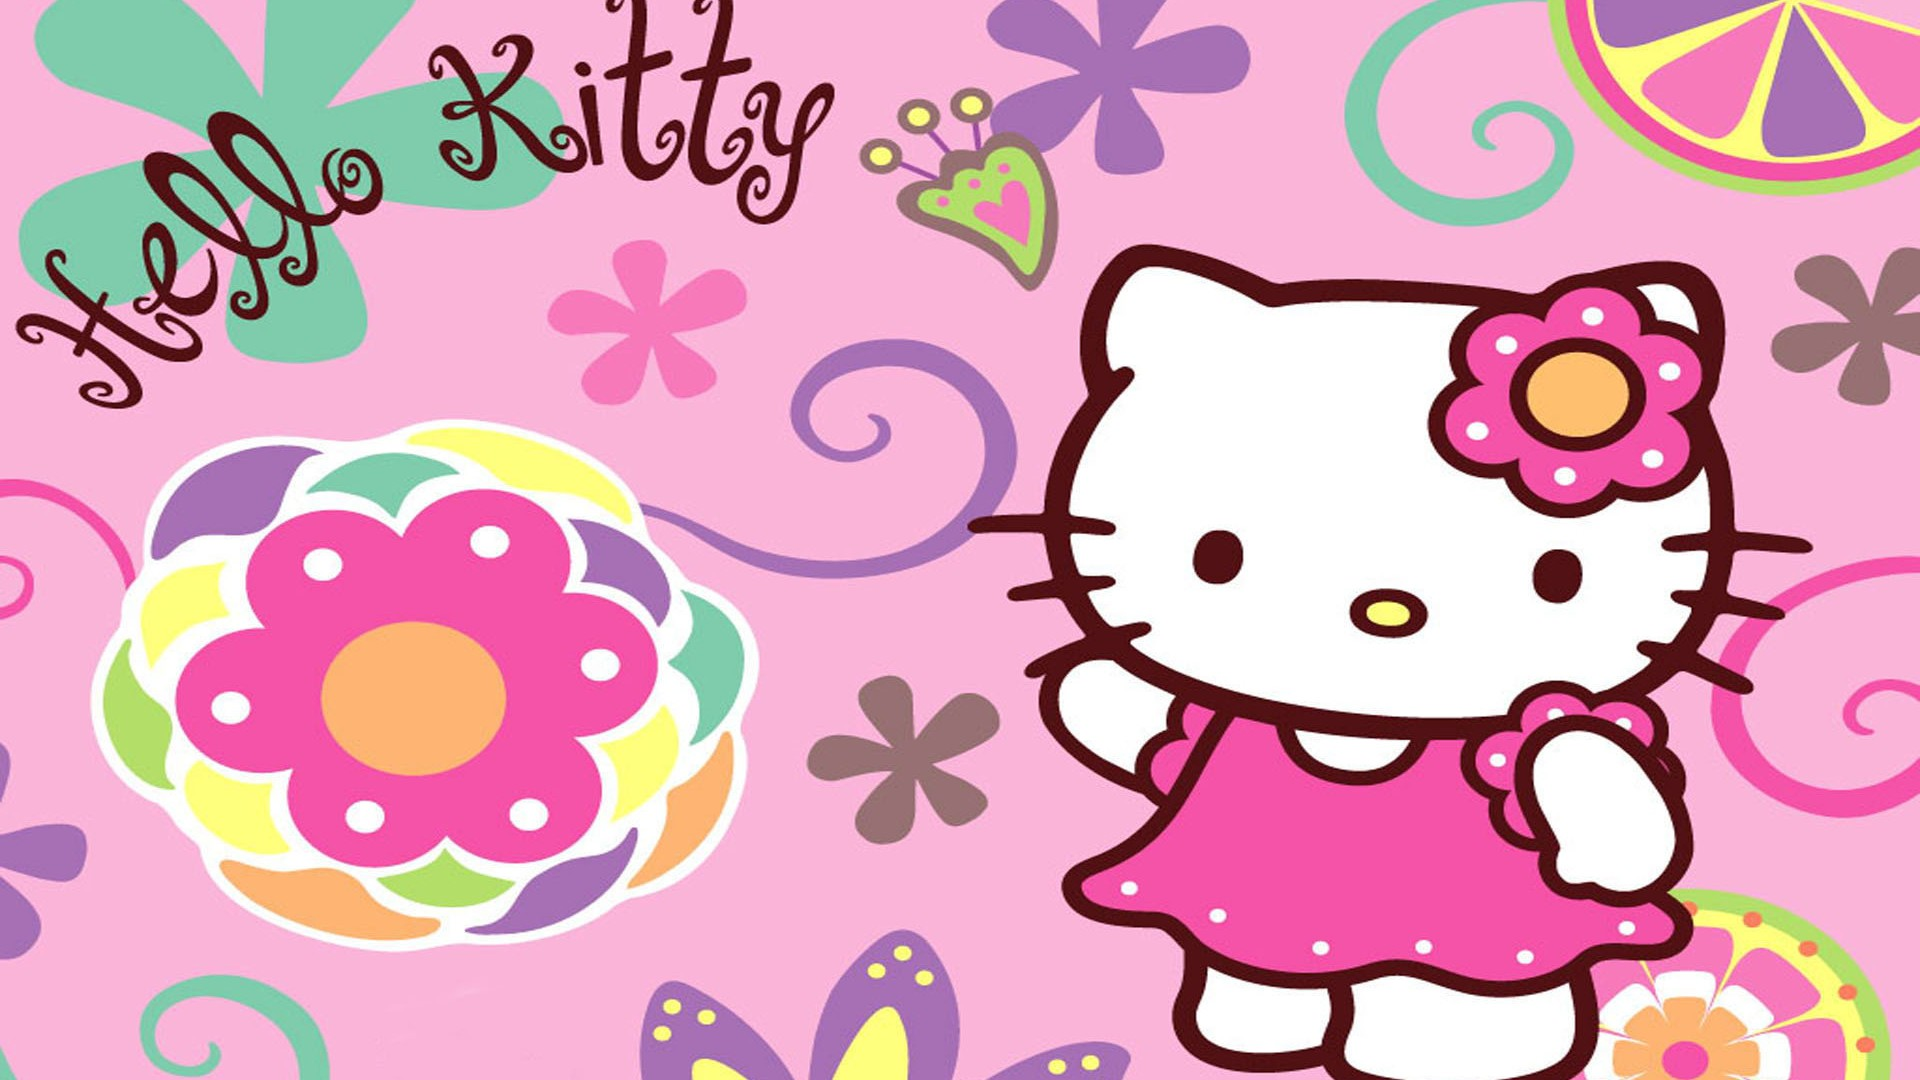 Desktop Wallpaper Hello Kitty Pictures with image resolution 1920x1080 pixel. You can use this wallpaper as background for your desktop Computer Screensavers, Android or iPhone smartphones